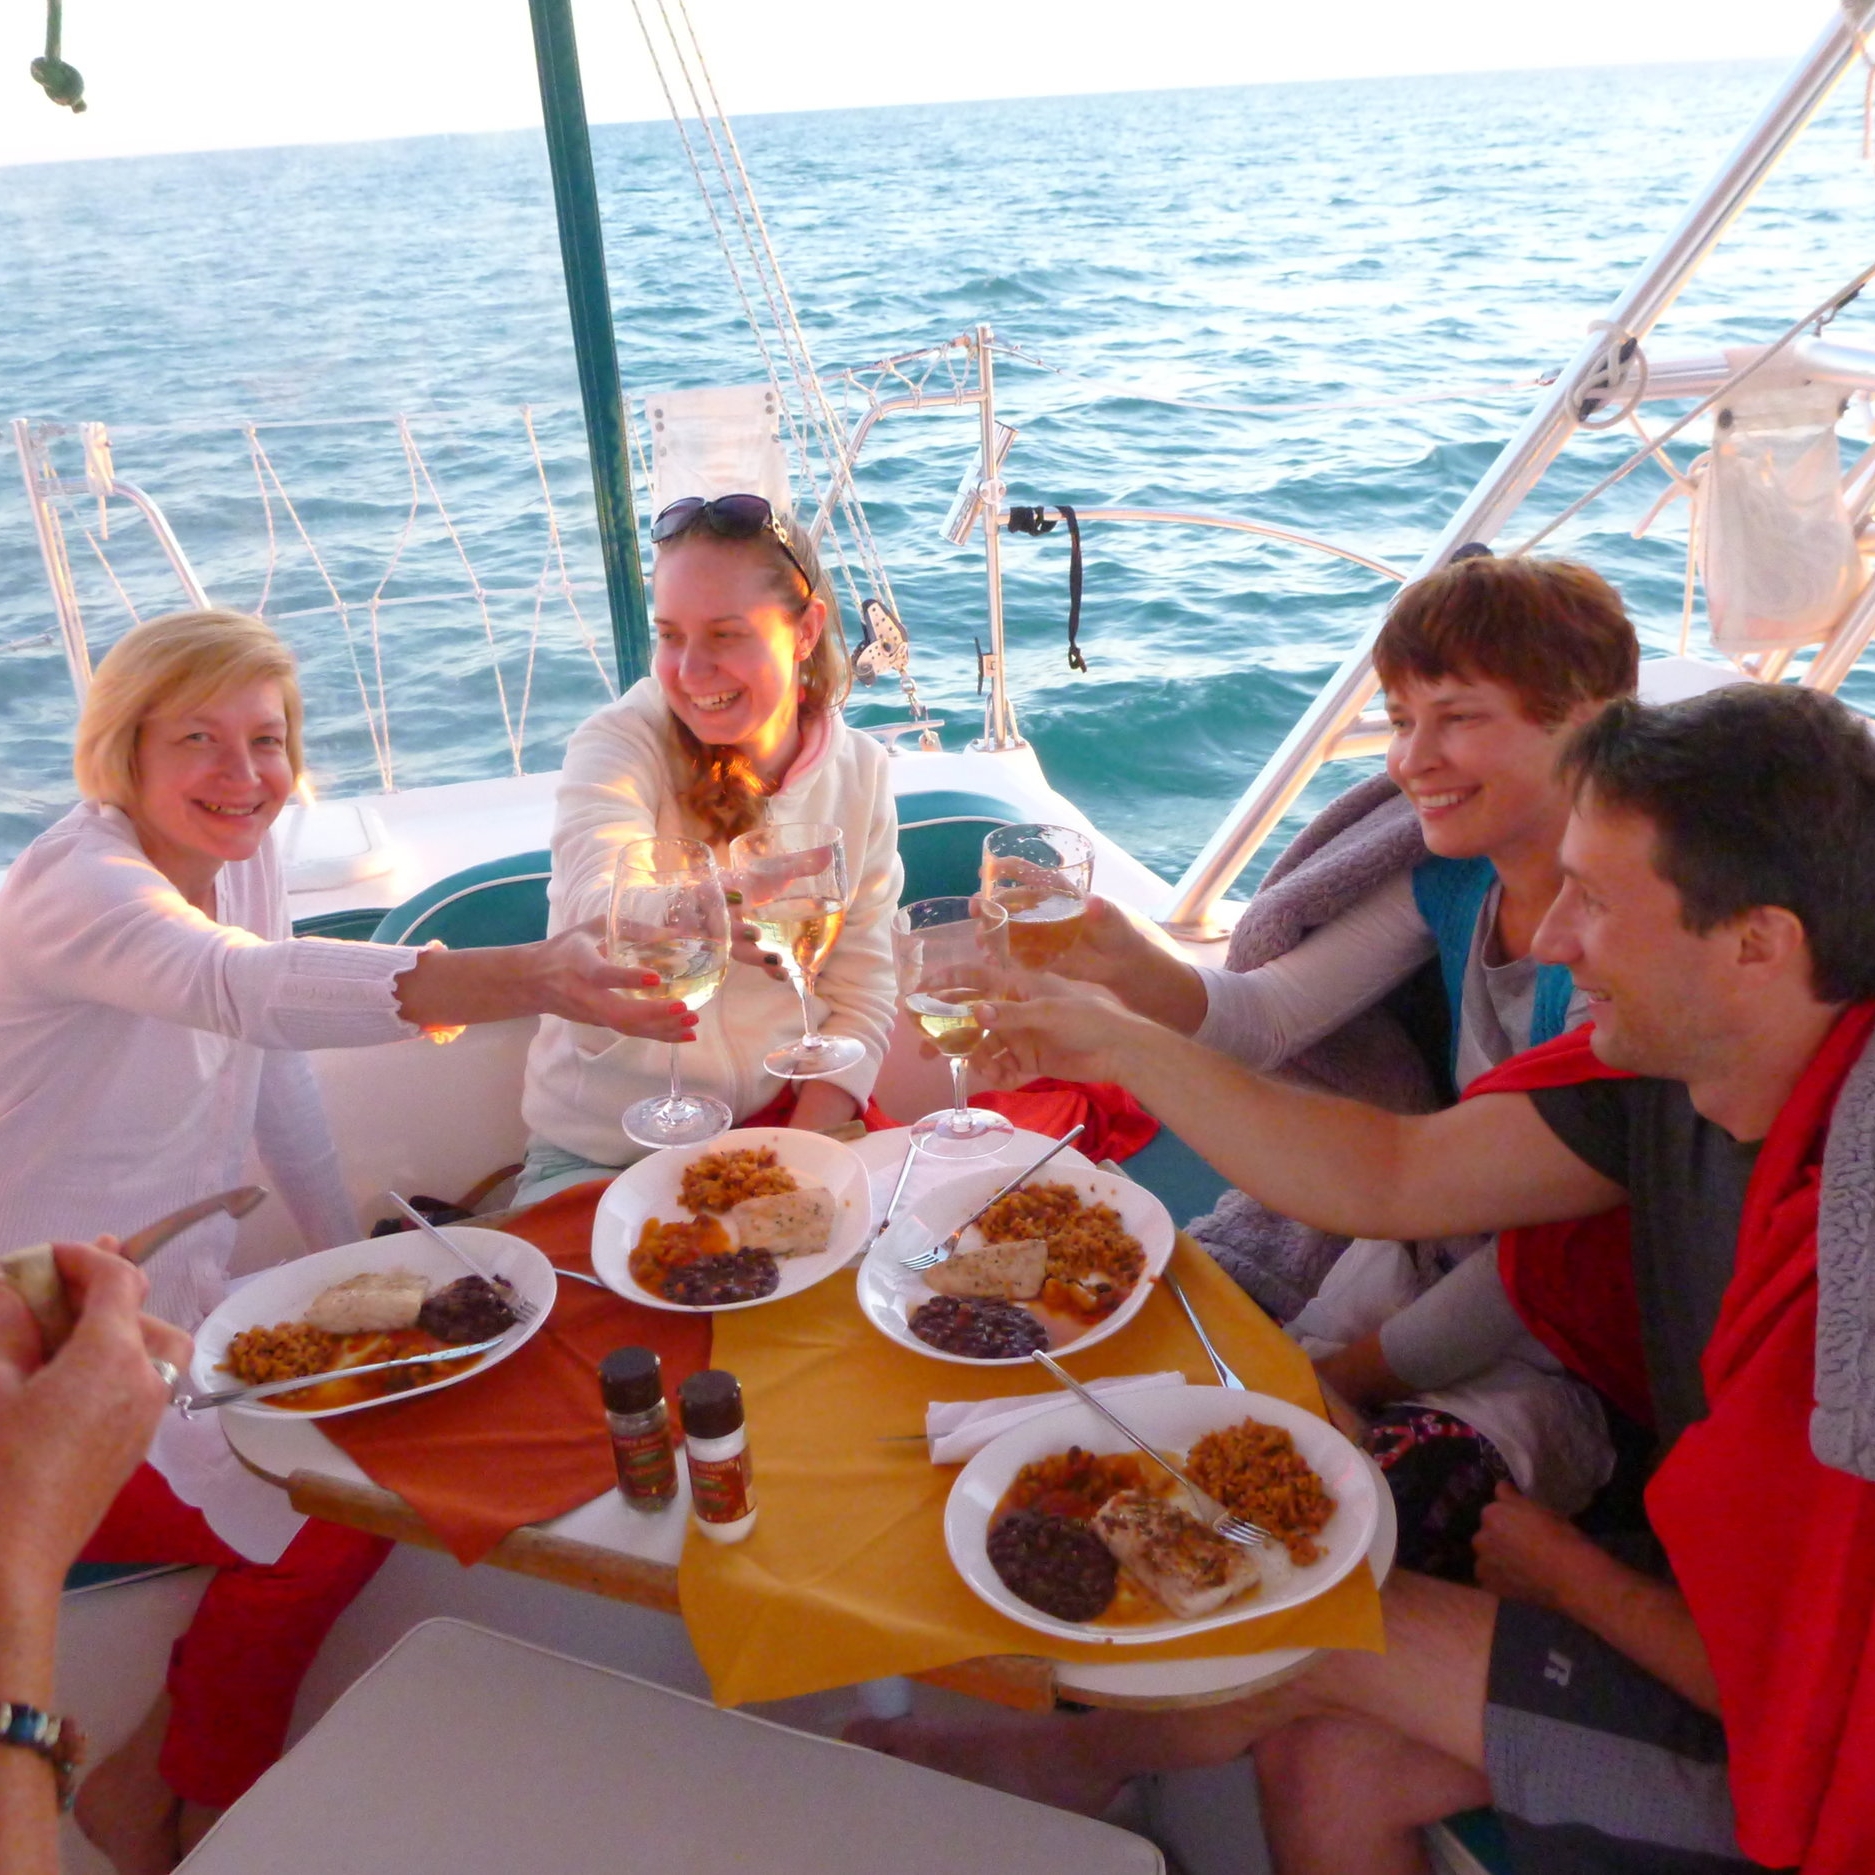 Dinner Cruise - Small DINNER PARTY at sea